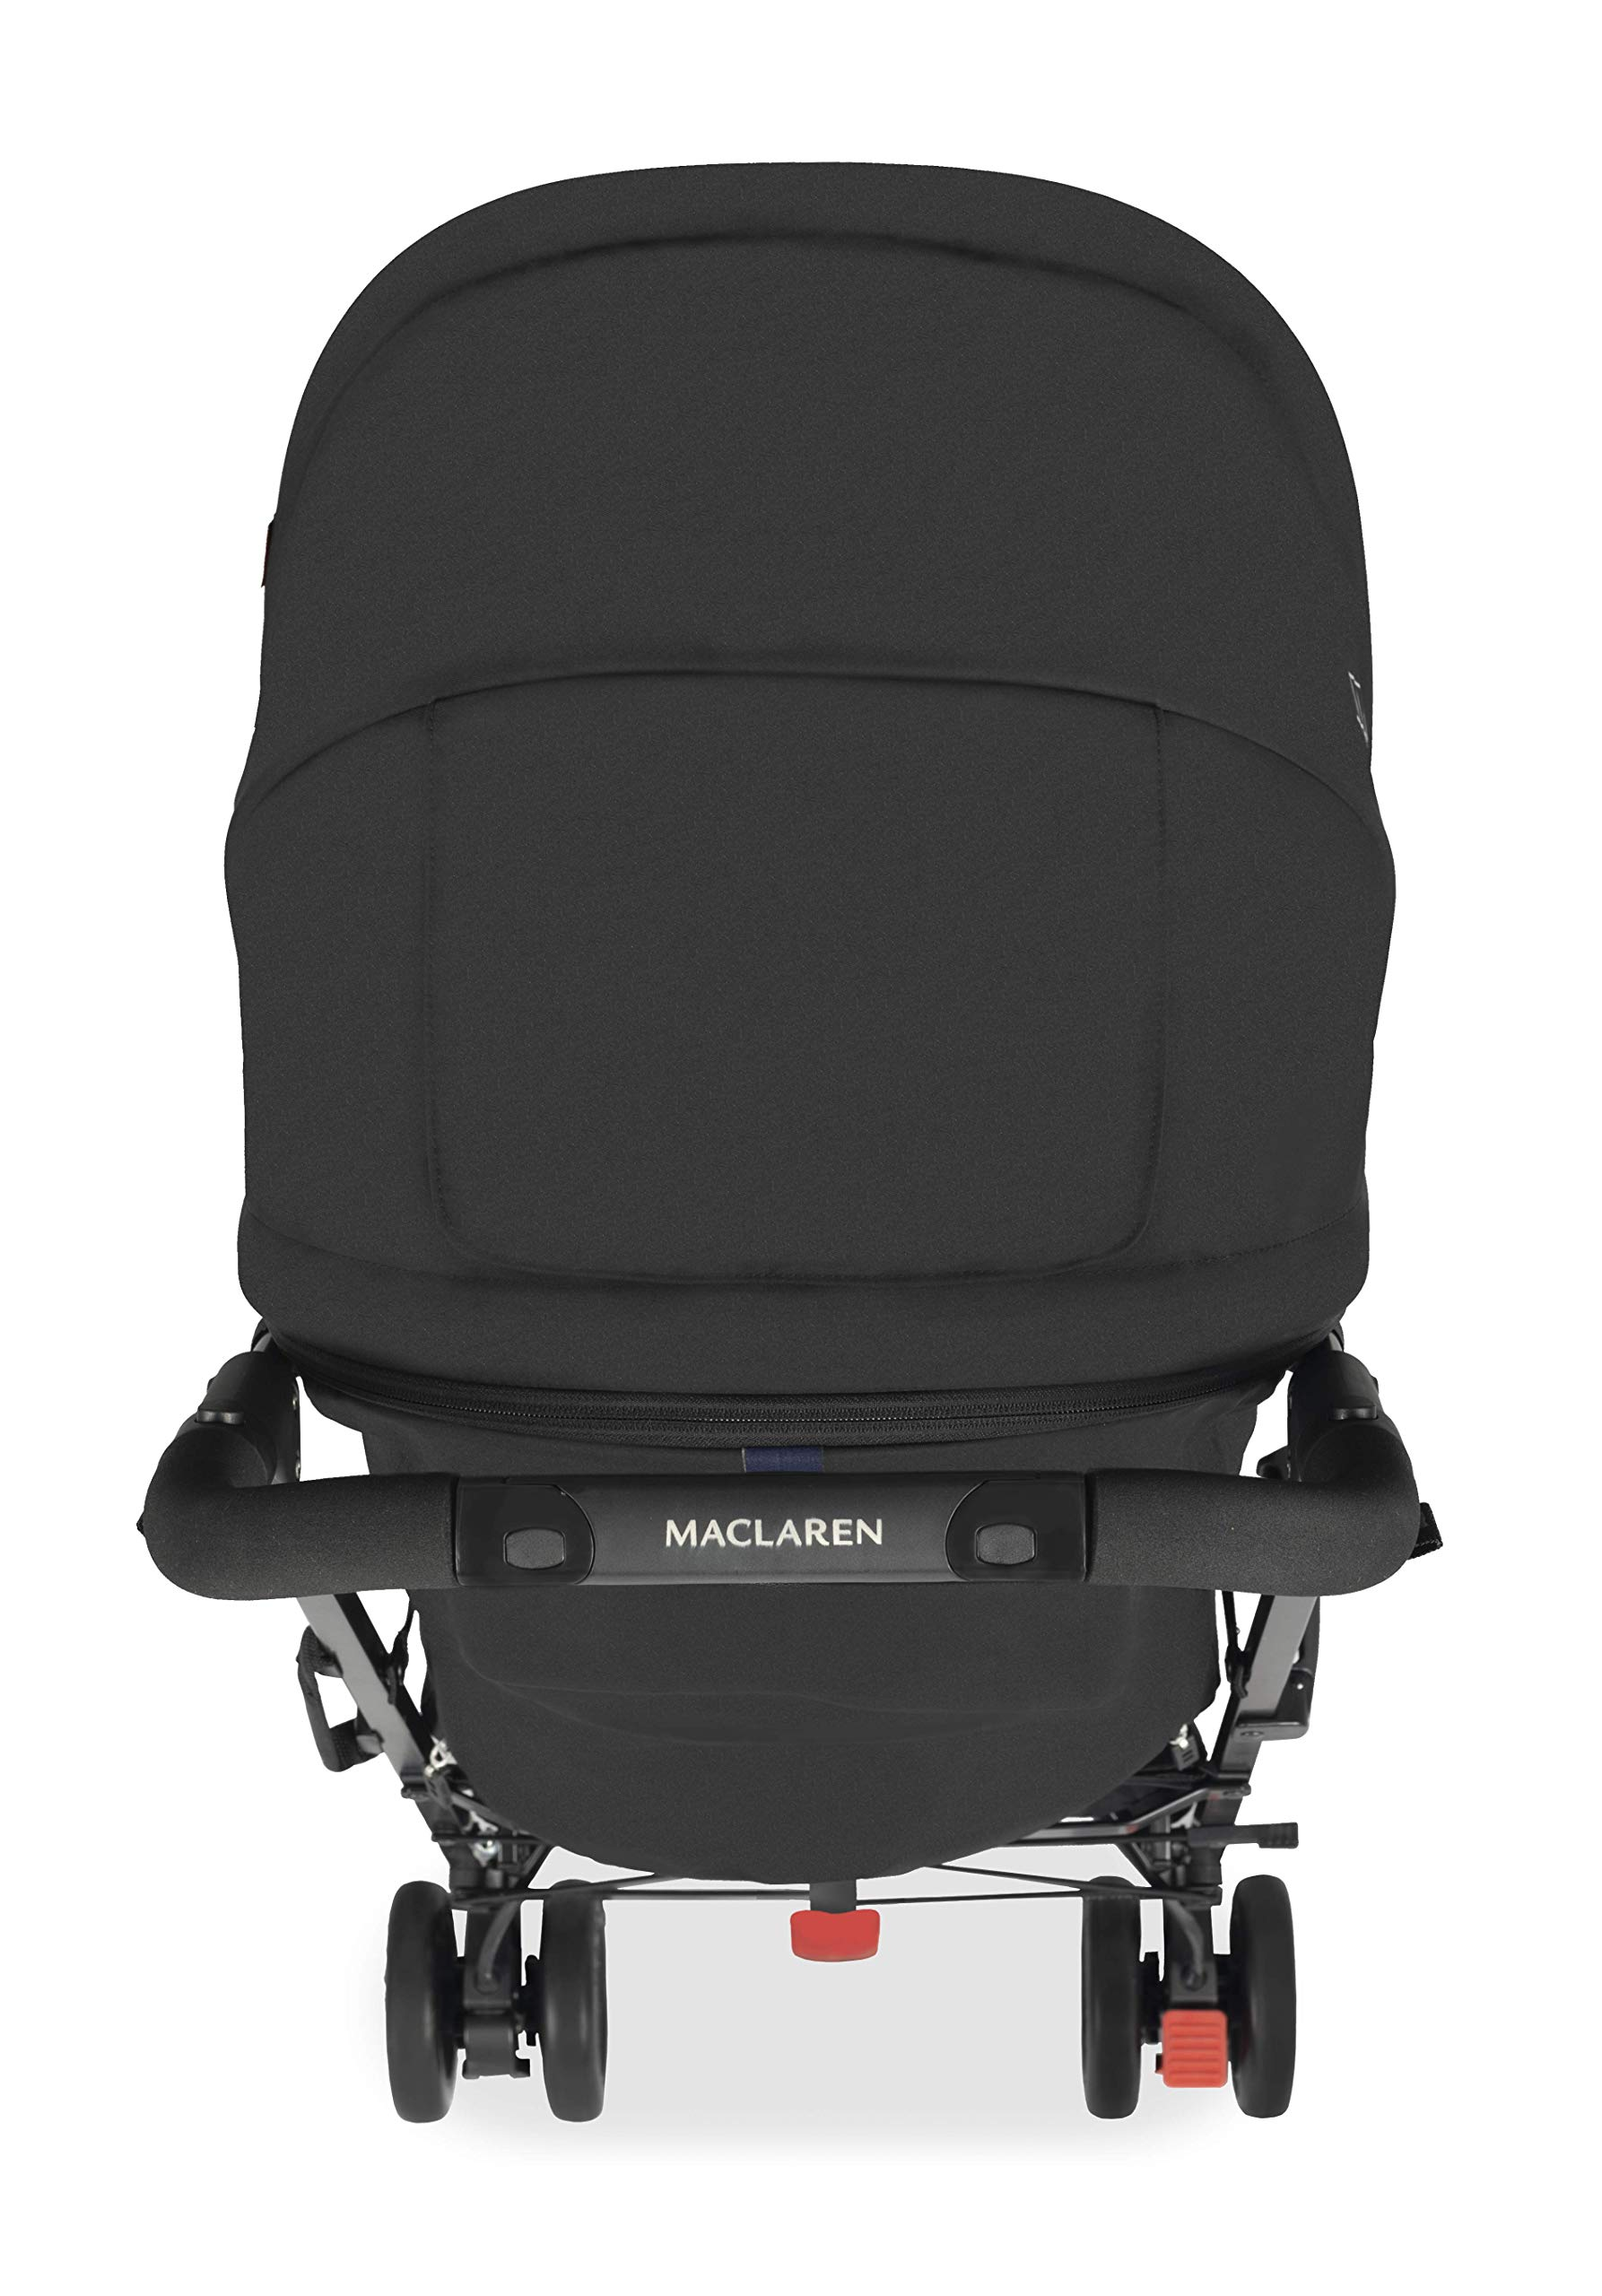 Maclaren Techno arc Stroller - lightweight, compact,Black/Black Maclaren The techno arc's basic weight is 7.1kg; ideal for newborns and children up to 25kg. The folded dimensions are 113cm L x 35cm w x 35cm H. The stroller is assembled The techno arc's padded seat reclines into 4 positions and converts into a new-born safety system. Coupled with ultra light flat-free eva tires and all wheel suspension The techno arc includes a wind-resistant rain cover and headhugger & shoulder pads. Waterproof/ upf 50+ hood to protect from the elements and machine washable seats to keep tidy 6